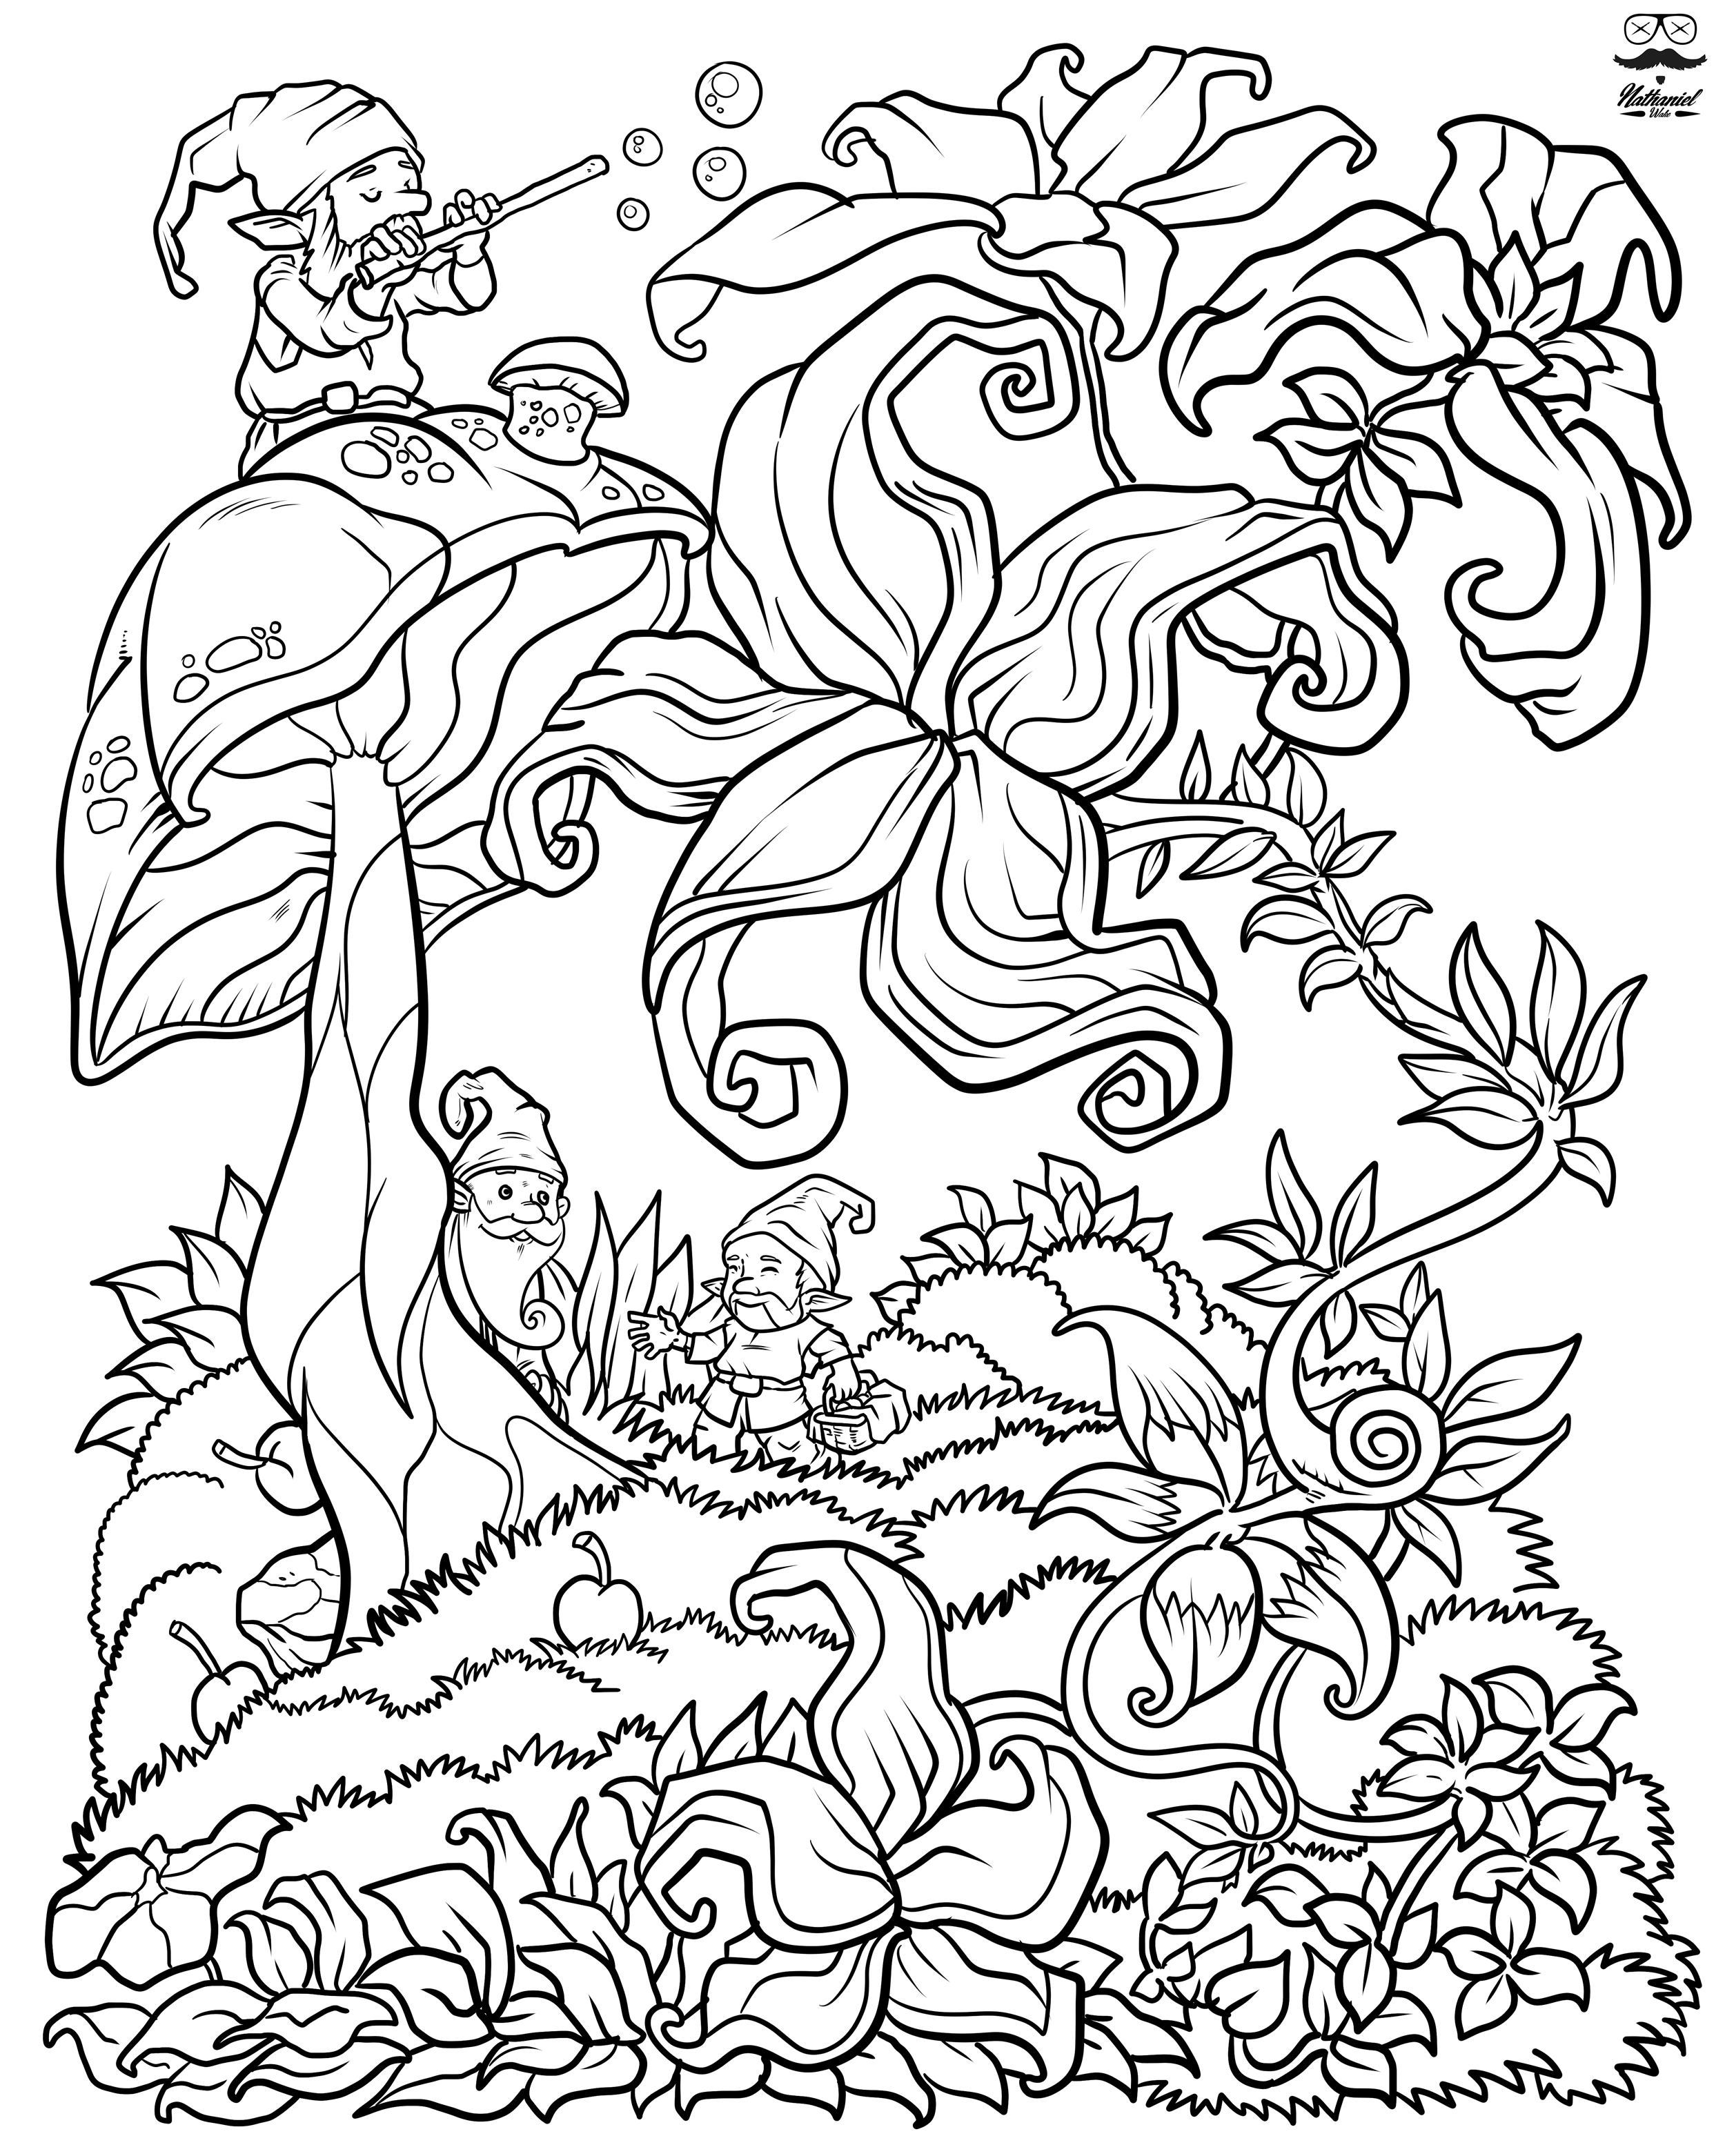 new colouring pages for adults hottest new coloring books february 2018 roundup colouring new pages adults for